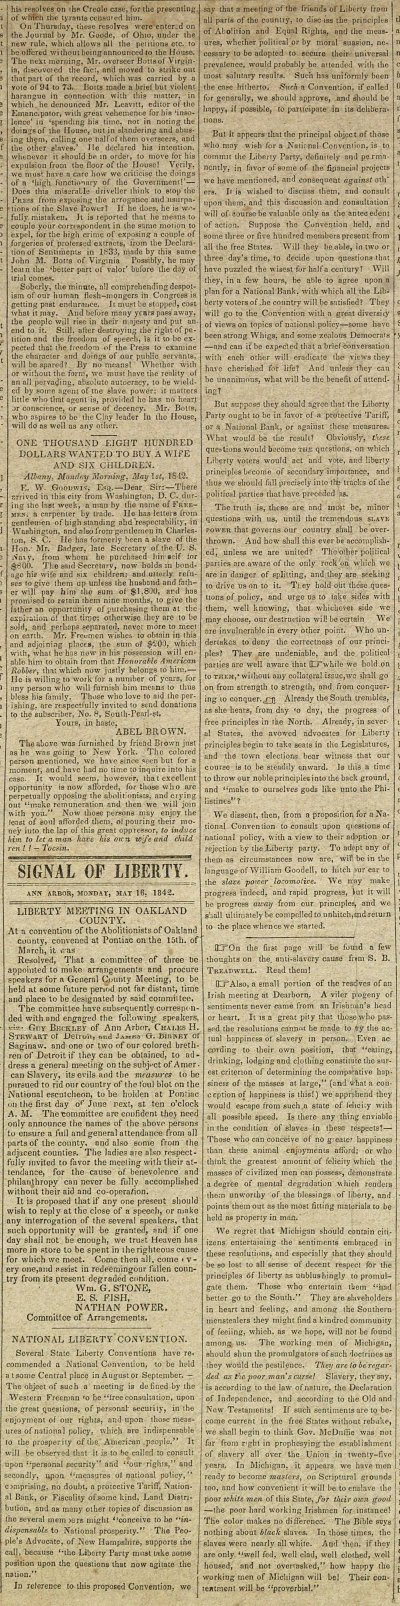 National Liberty Convention image